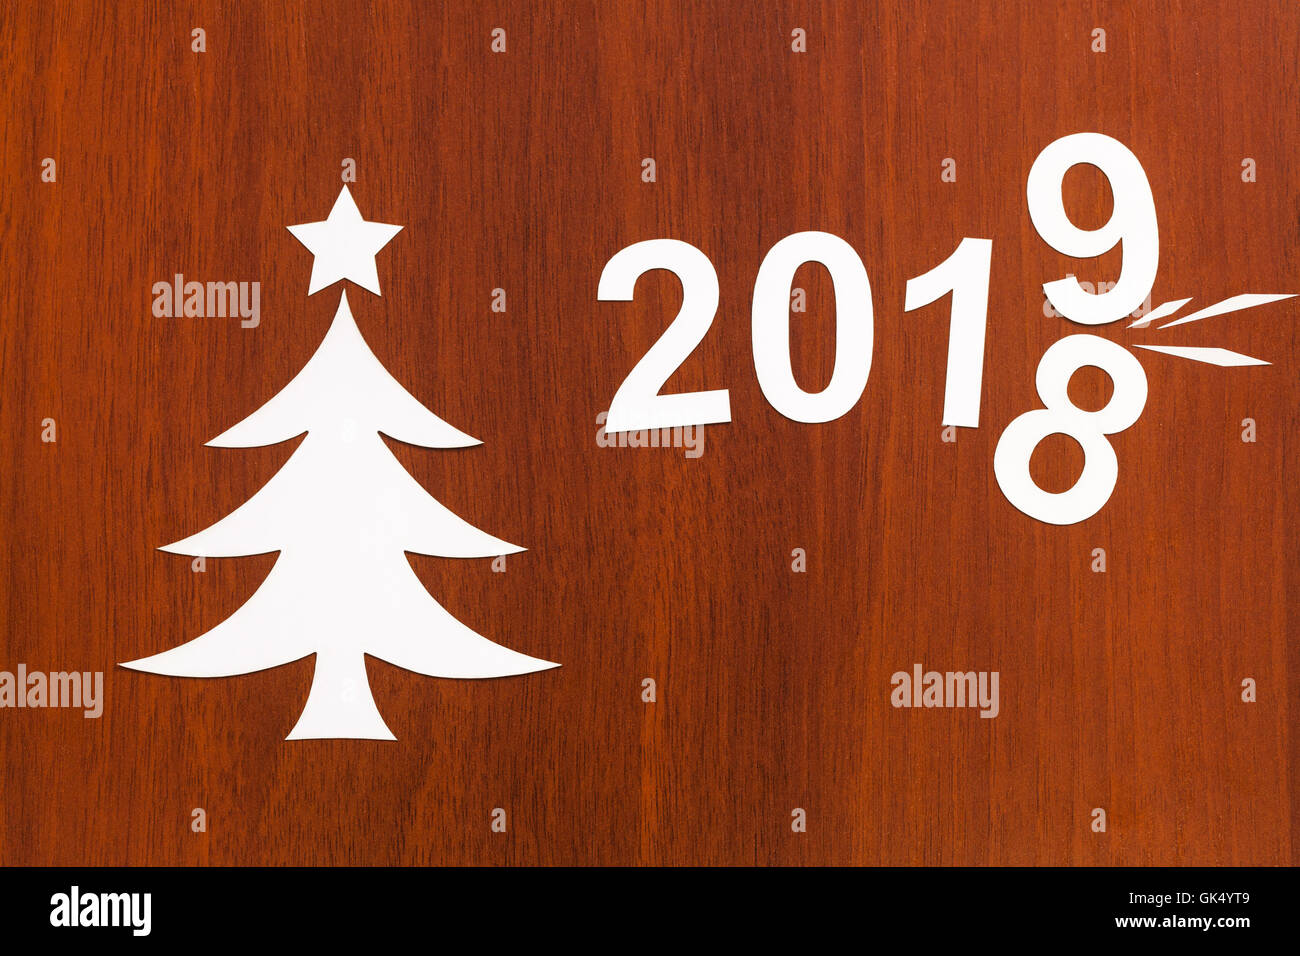 2019 Weihnachten.New Year 2019 Changes 2018 Abstract Christmas Conceptual Image